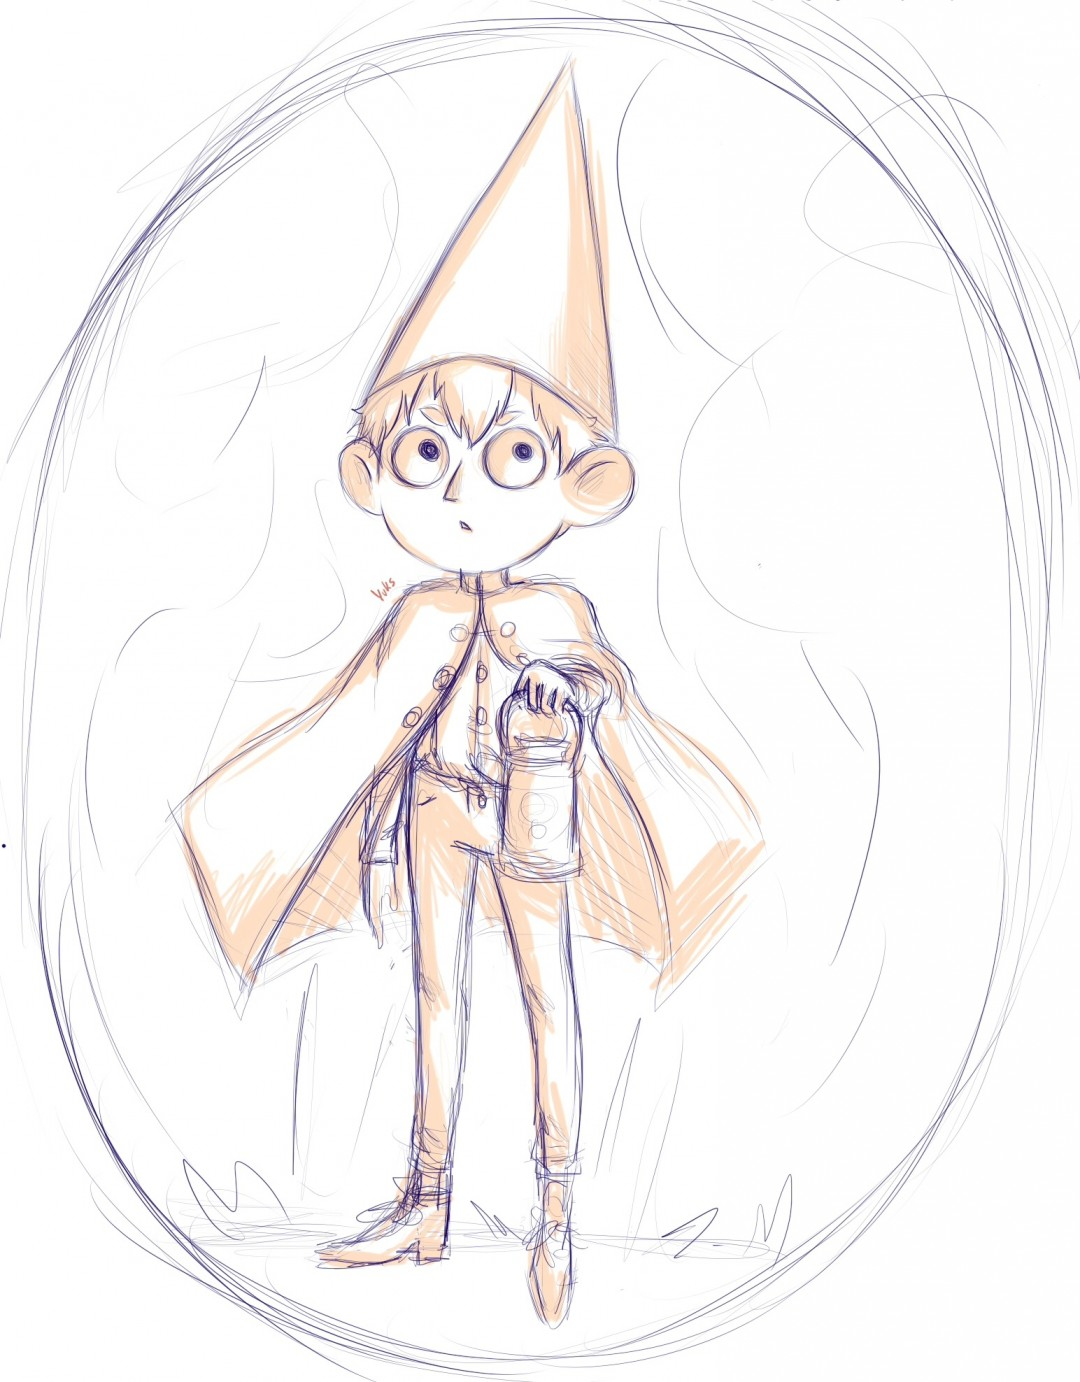 Over the Garden Wall (Wirt) szkic